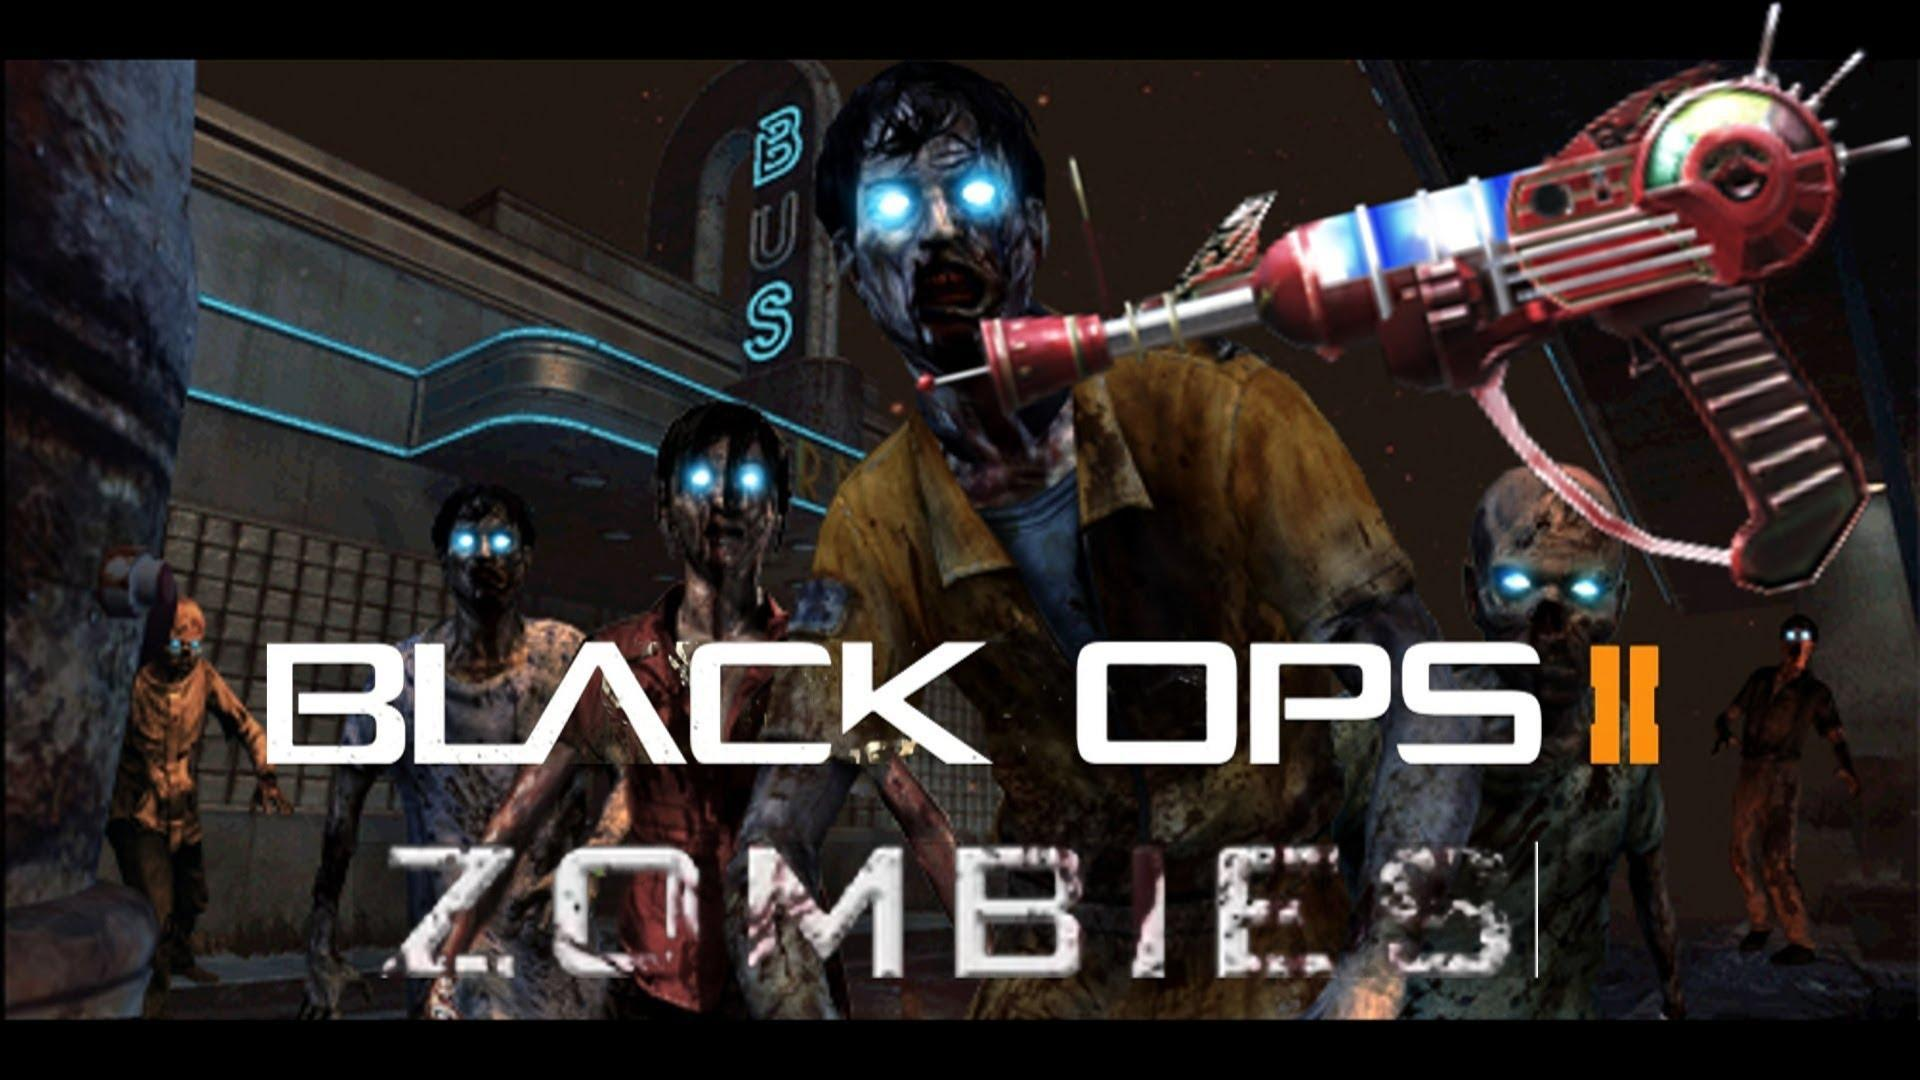 of duty zombies wallpapercall of duty black ops 2 zombies wallpaper 1920x1080